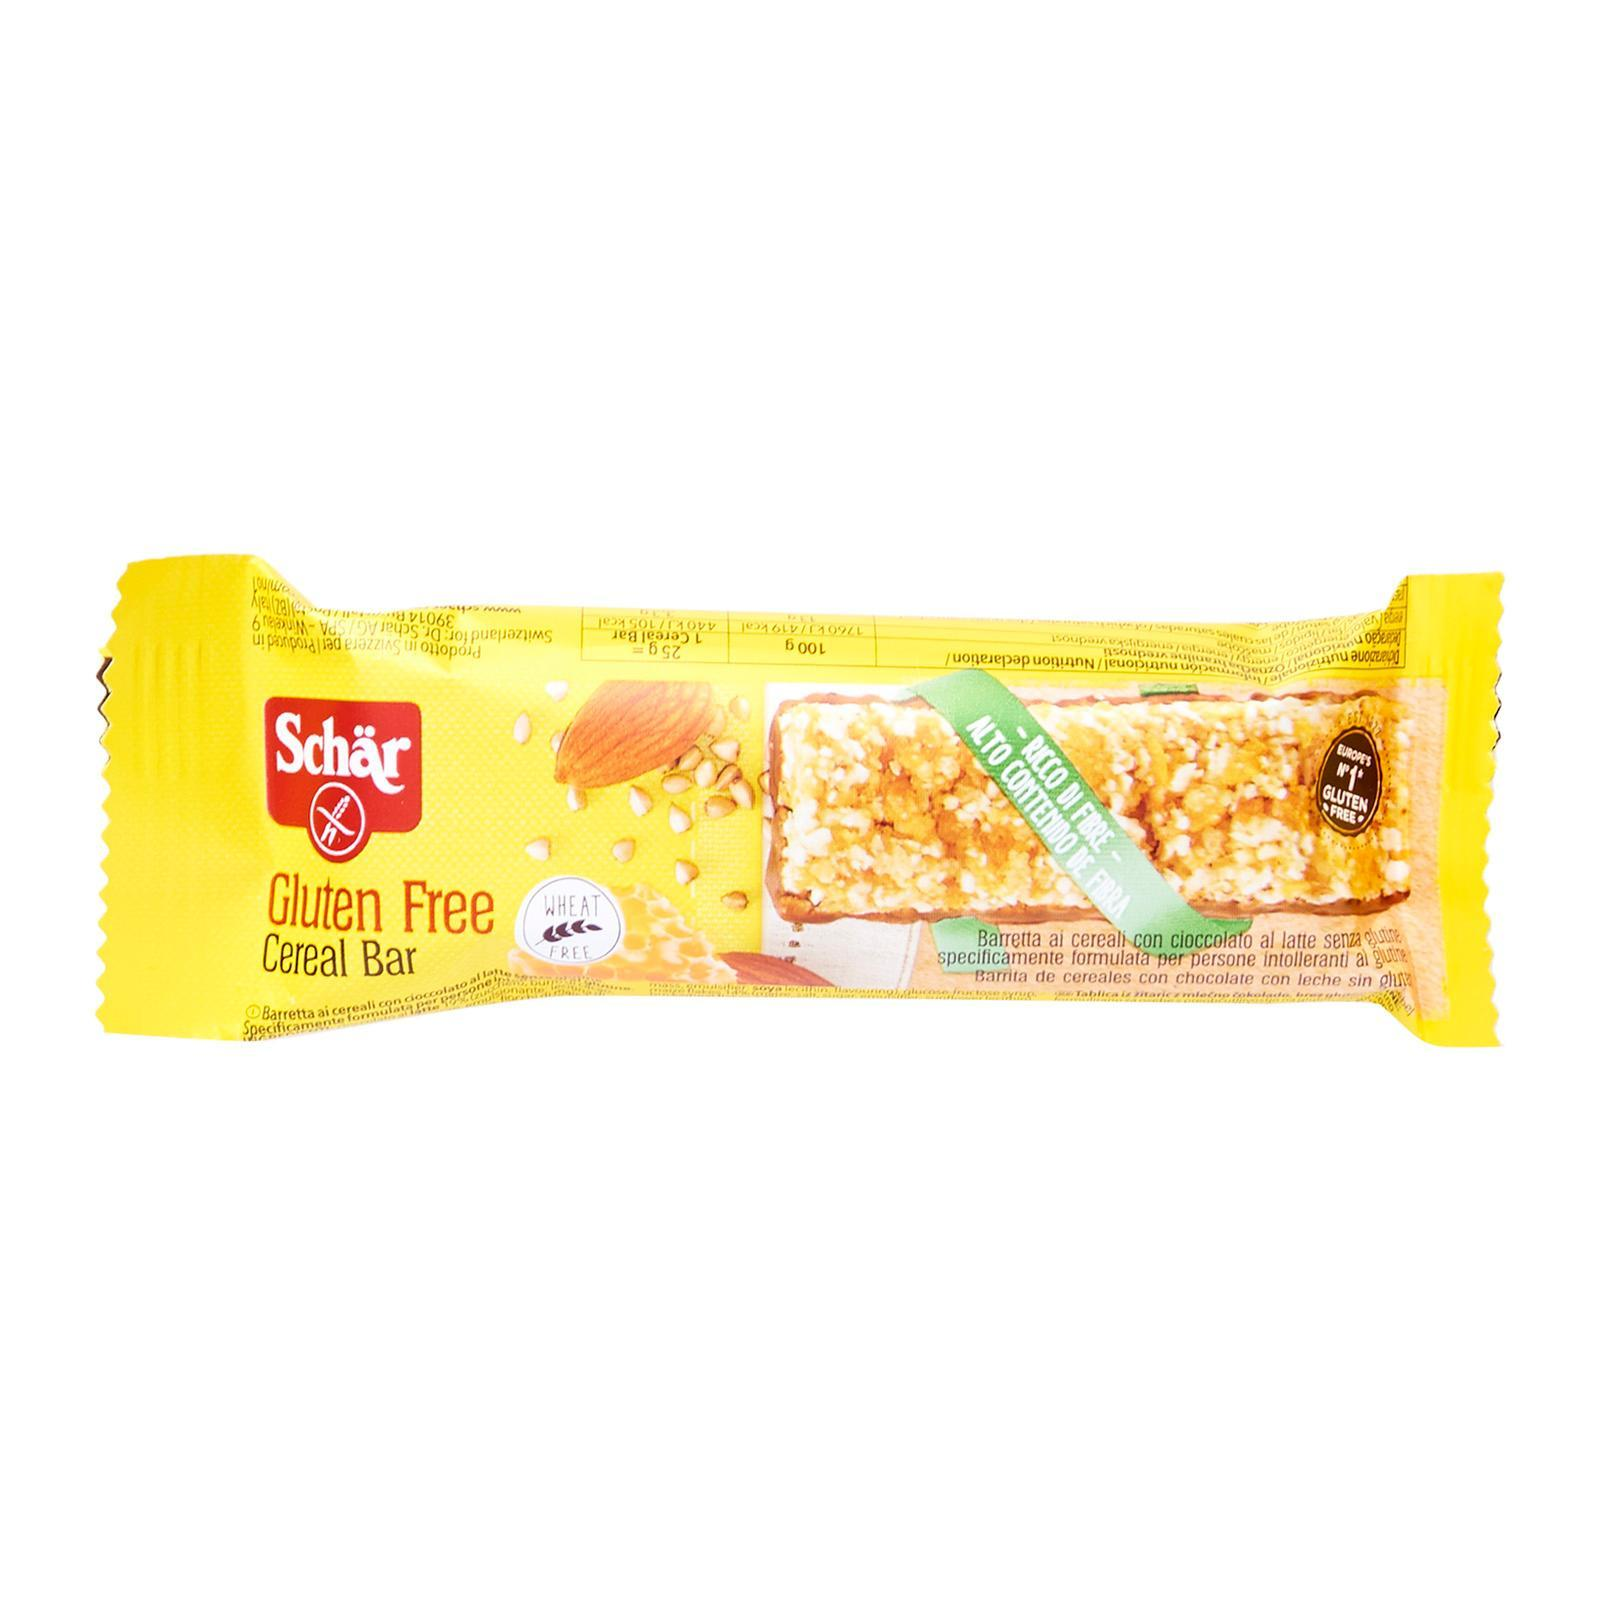 Dr. Schar Cereal Bar - Gluten Free by Agora Products